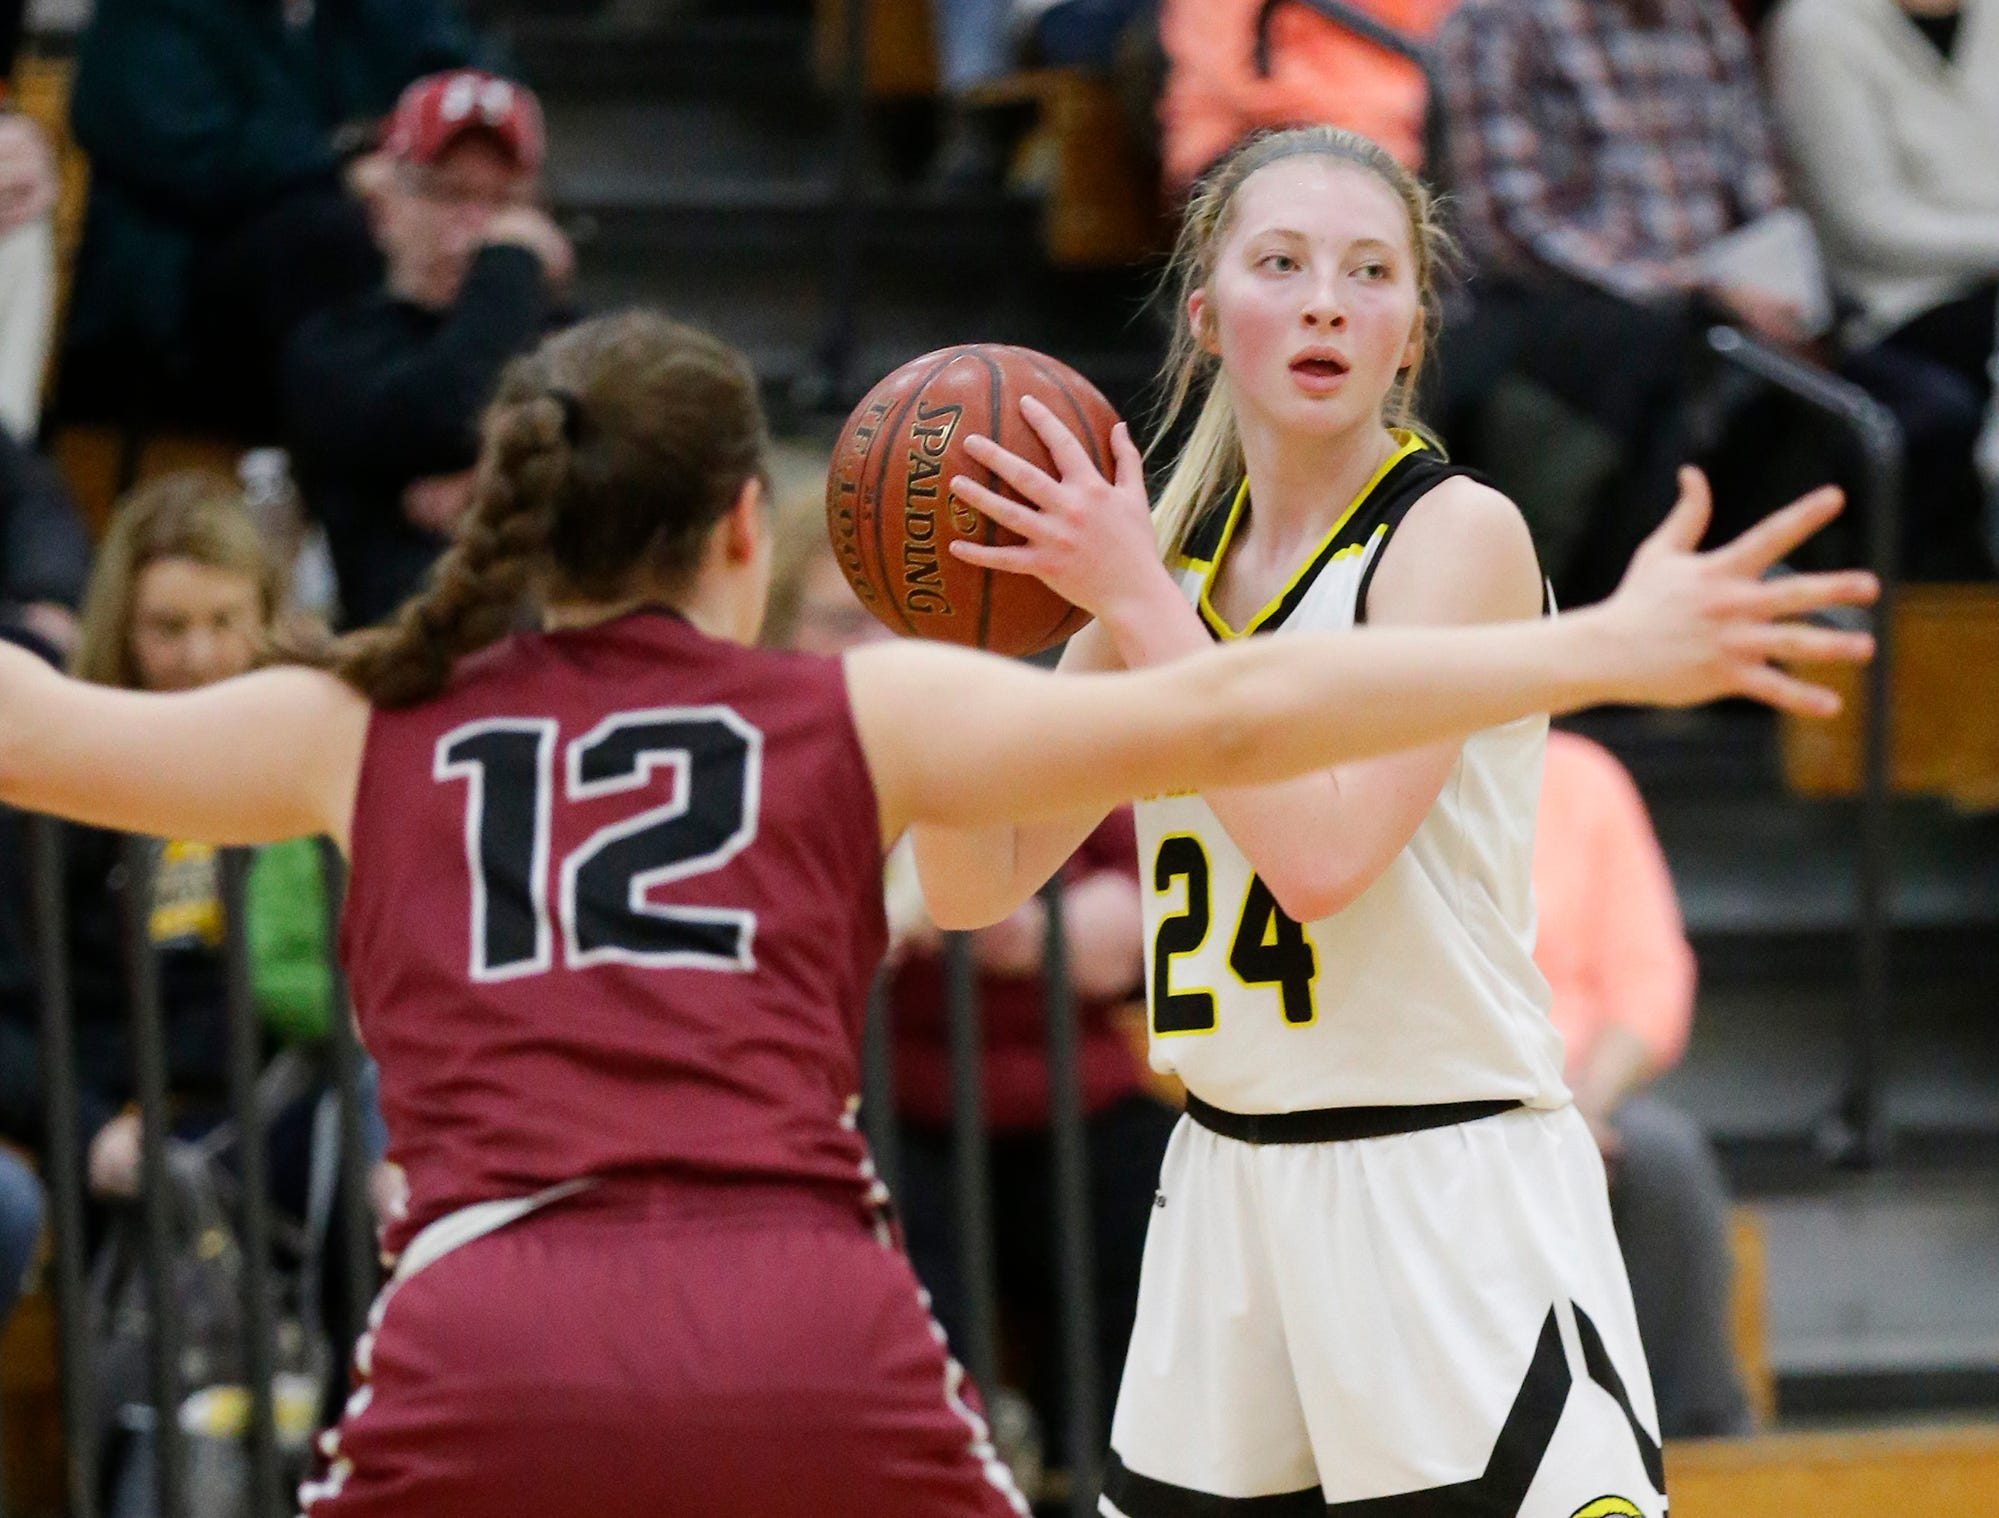 Waupun High School girls basketball's Peyton McGinnis (24) looks to pass the ball against Mayville High School's Alaina Wagner (12) Saturday, February 23, 2019 during their WIAA Division 4 sectional quarterfinal game in Waupun. Waupun won the game 62-45. Doug Raflik/USA TODAY NETWORK-Wisconsin